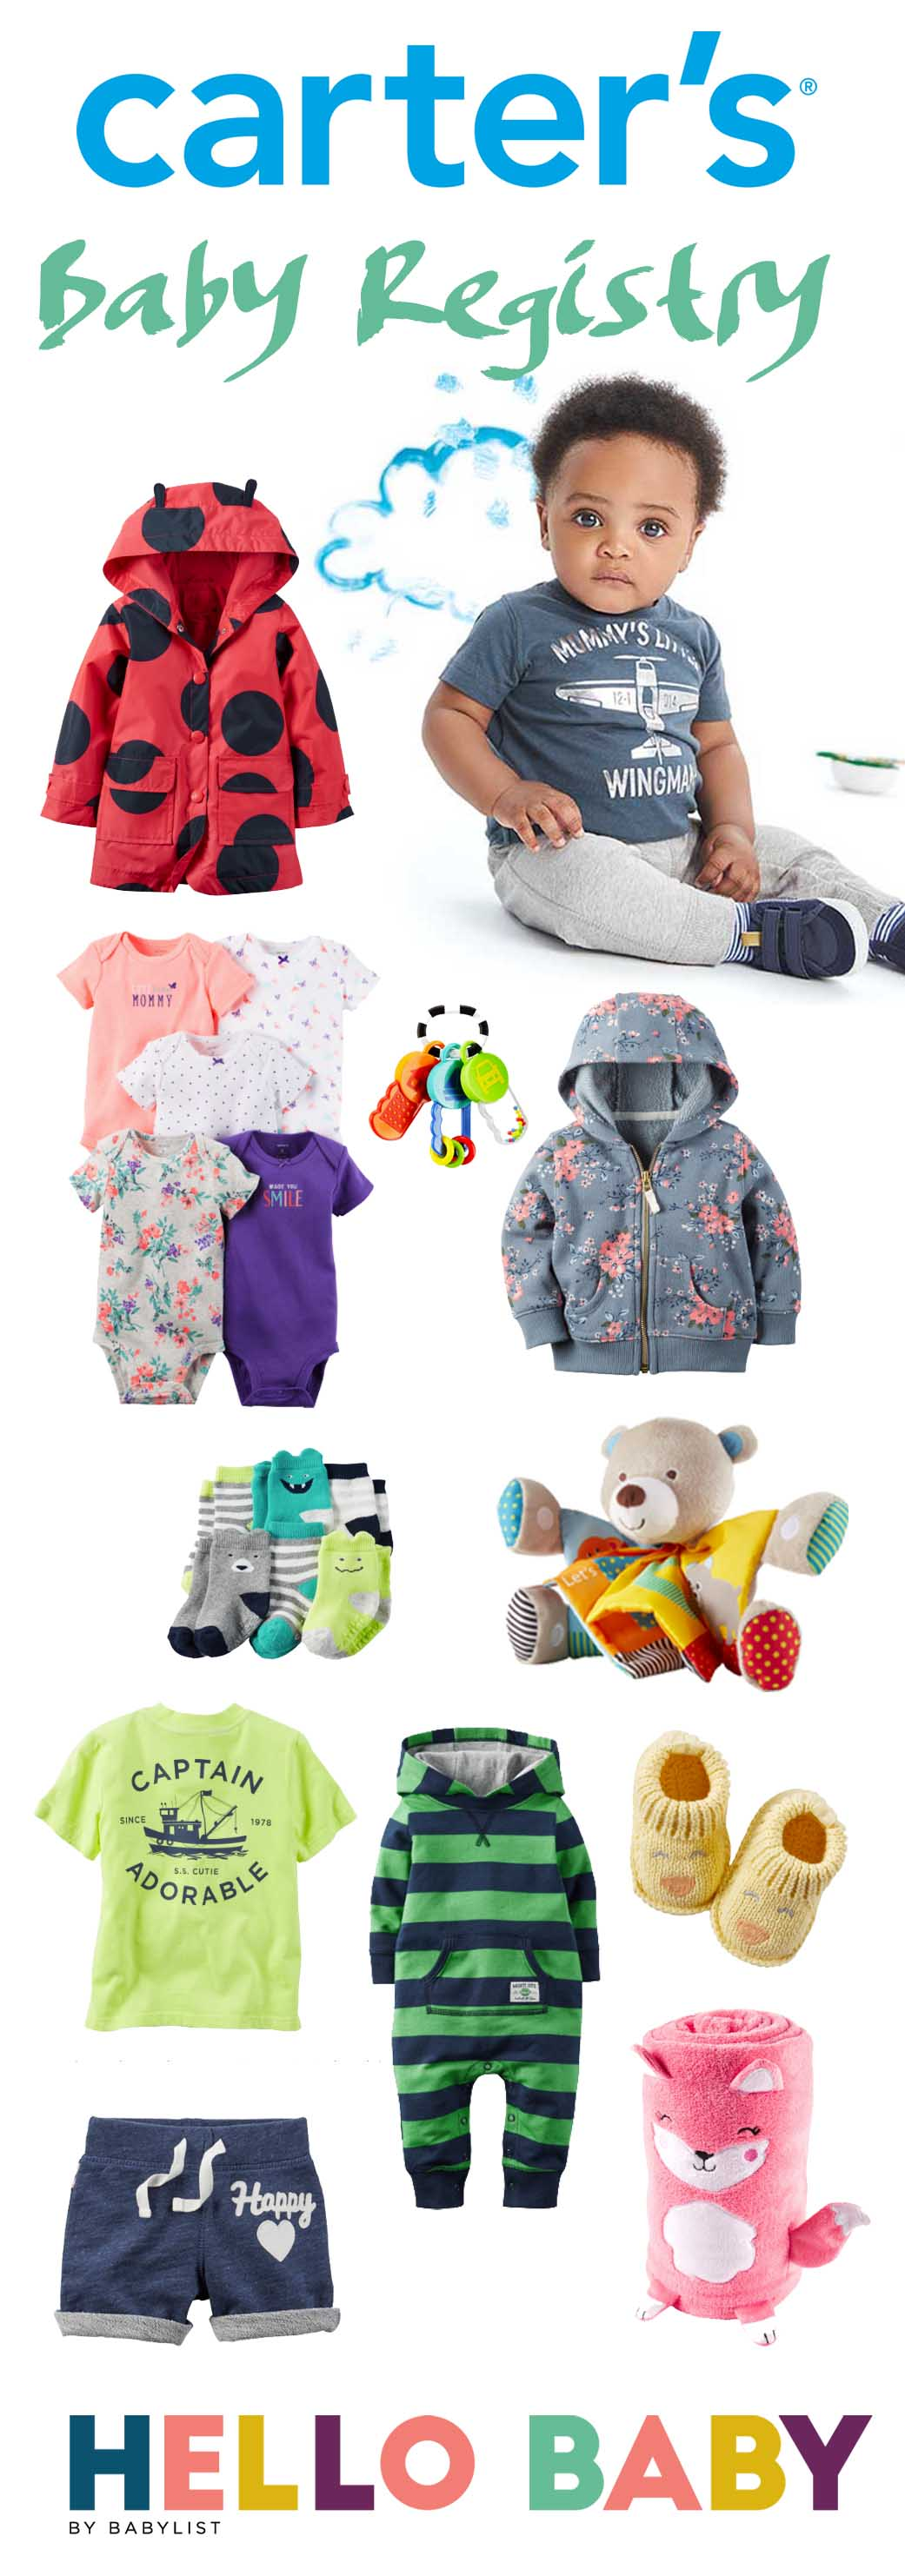 Carters has cute, affordable and often clever clothing options for your baby registry that will make you smile. Take a look at some of our favorites.